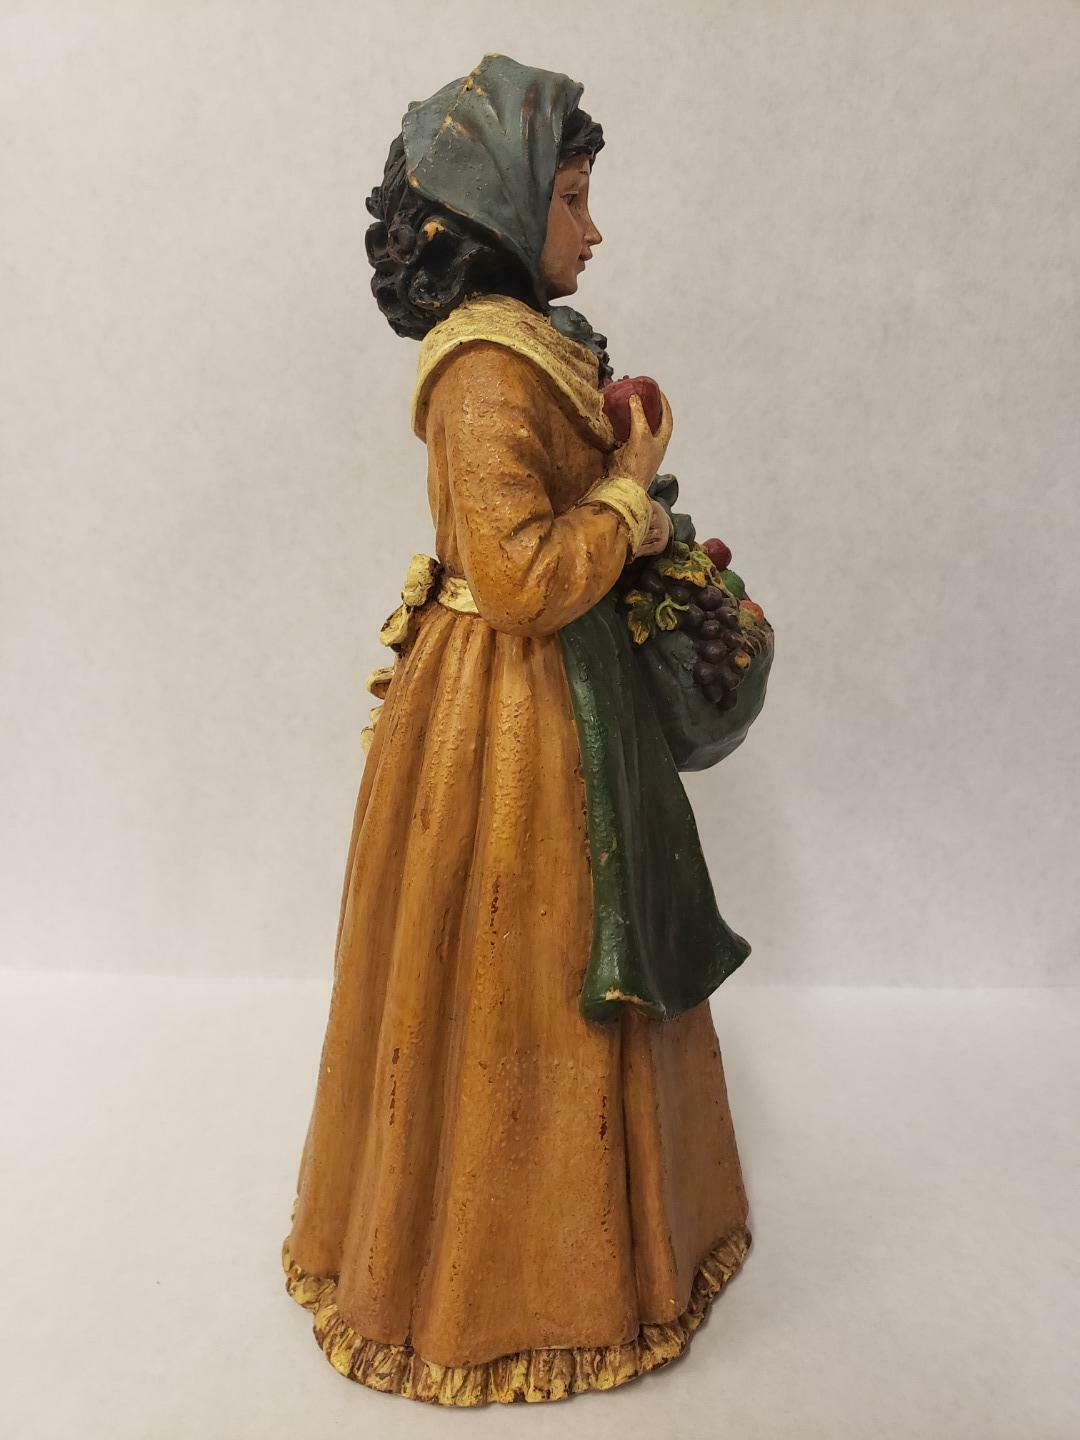 "Vintage Peasant Woman Lady Figurine Apron Fruit Bread Basket Bag Resin 12"" tall"